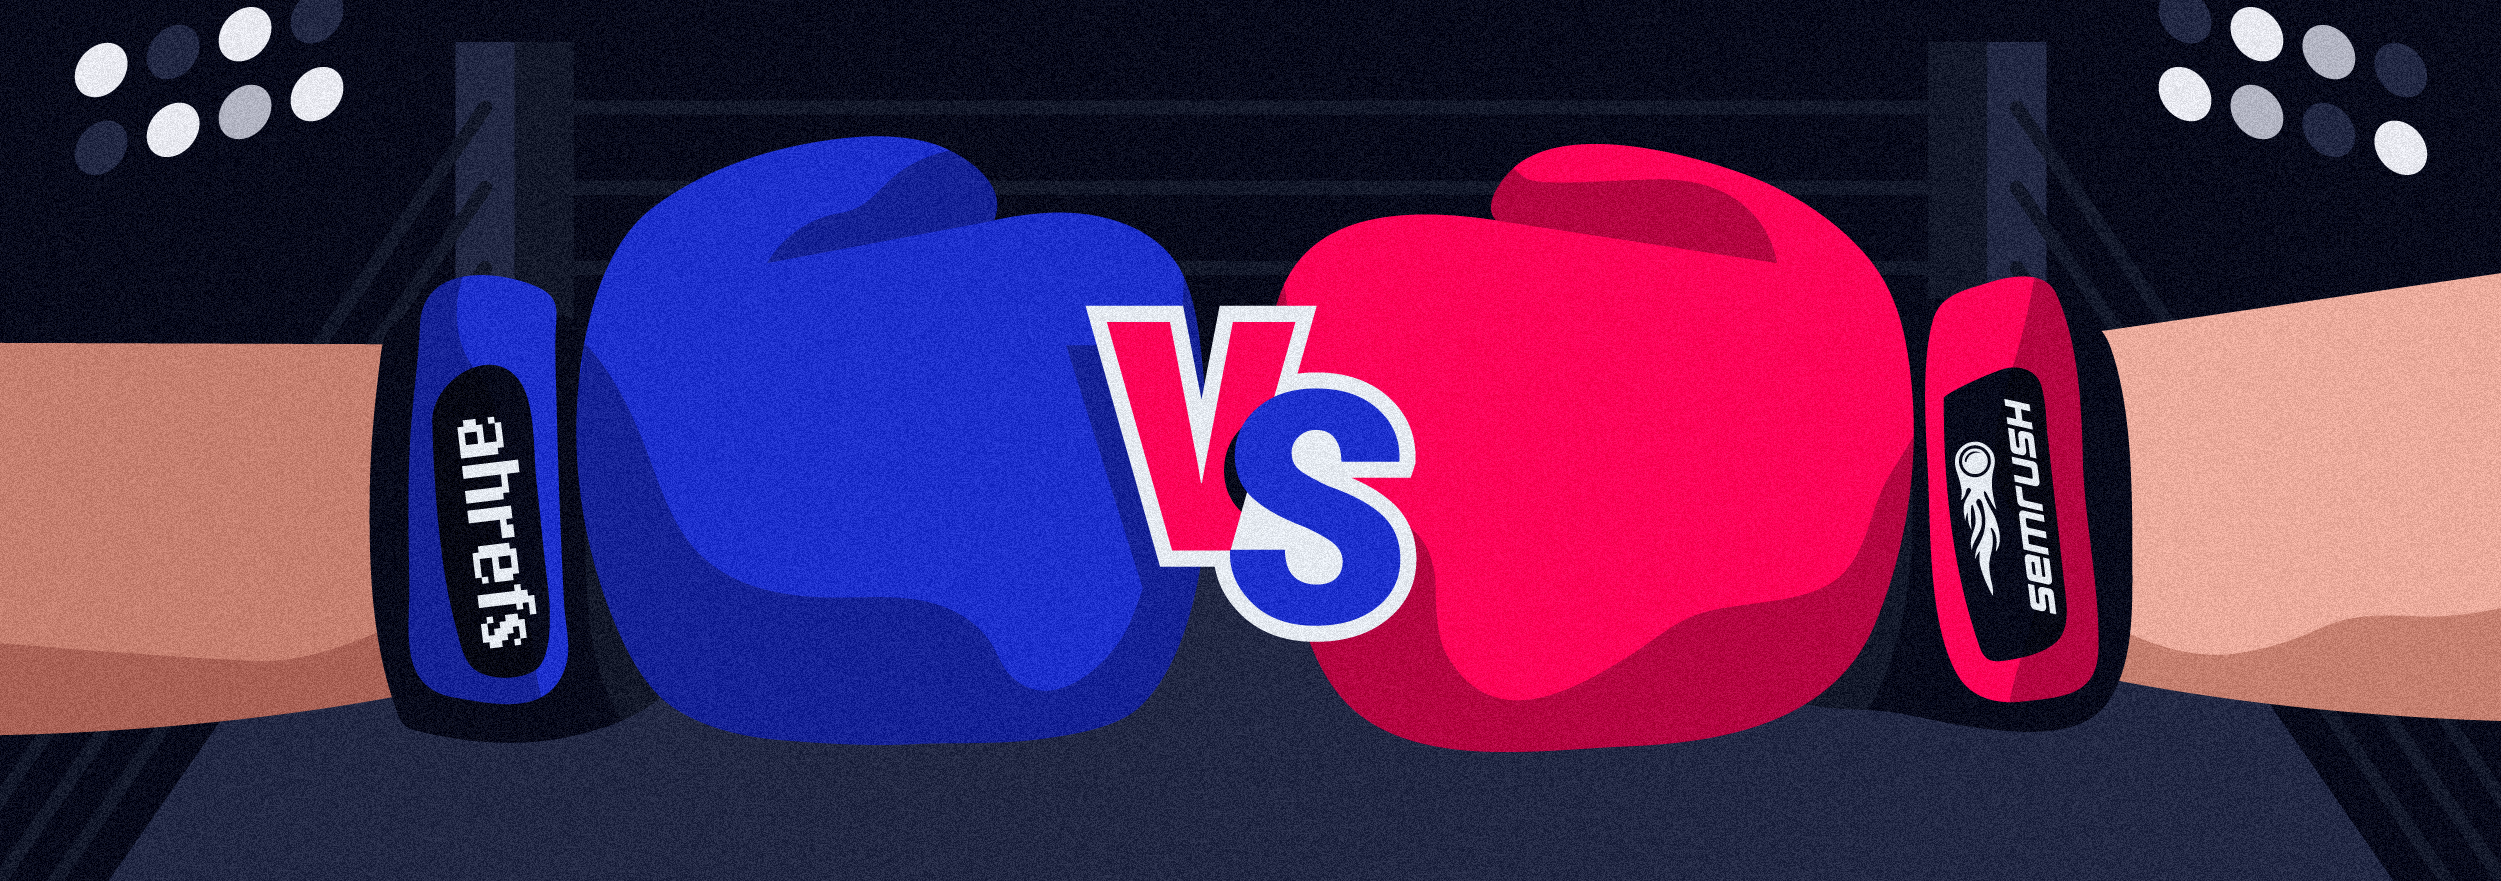 Ahrefs Vs SEMrush: Which SEO Tool Is Best For Your Business?